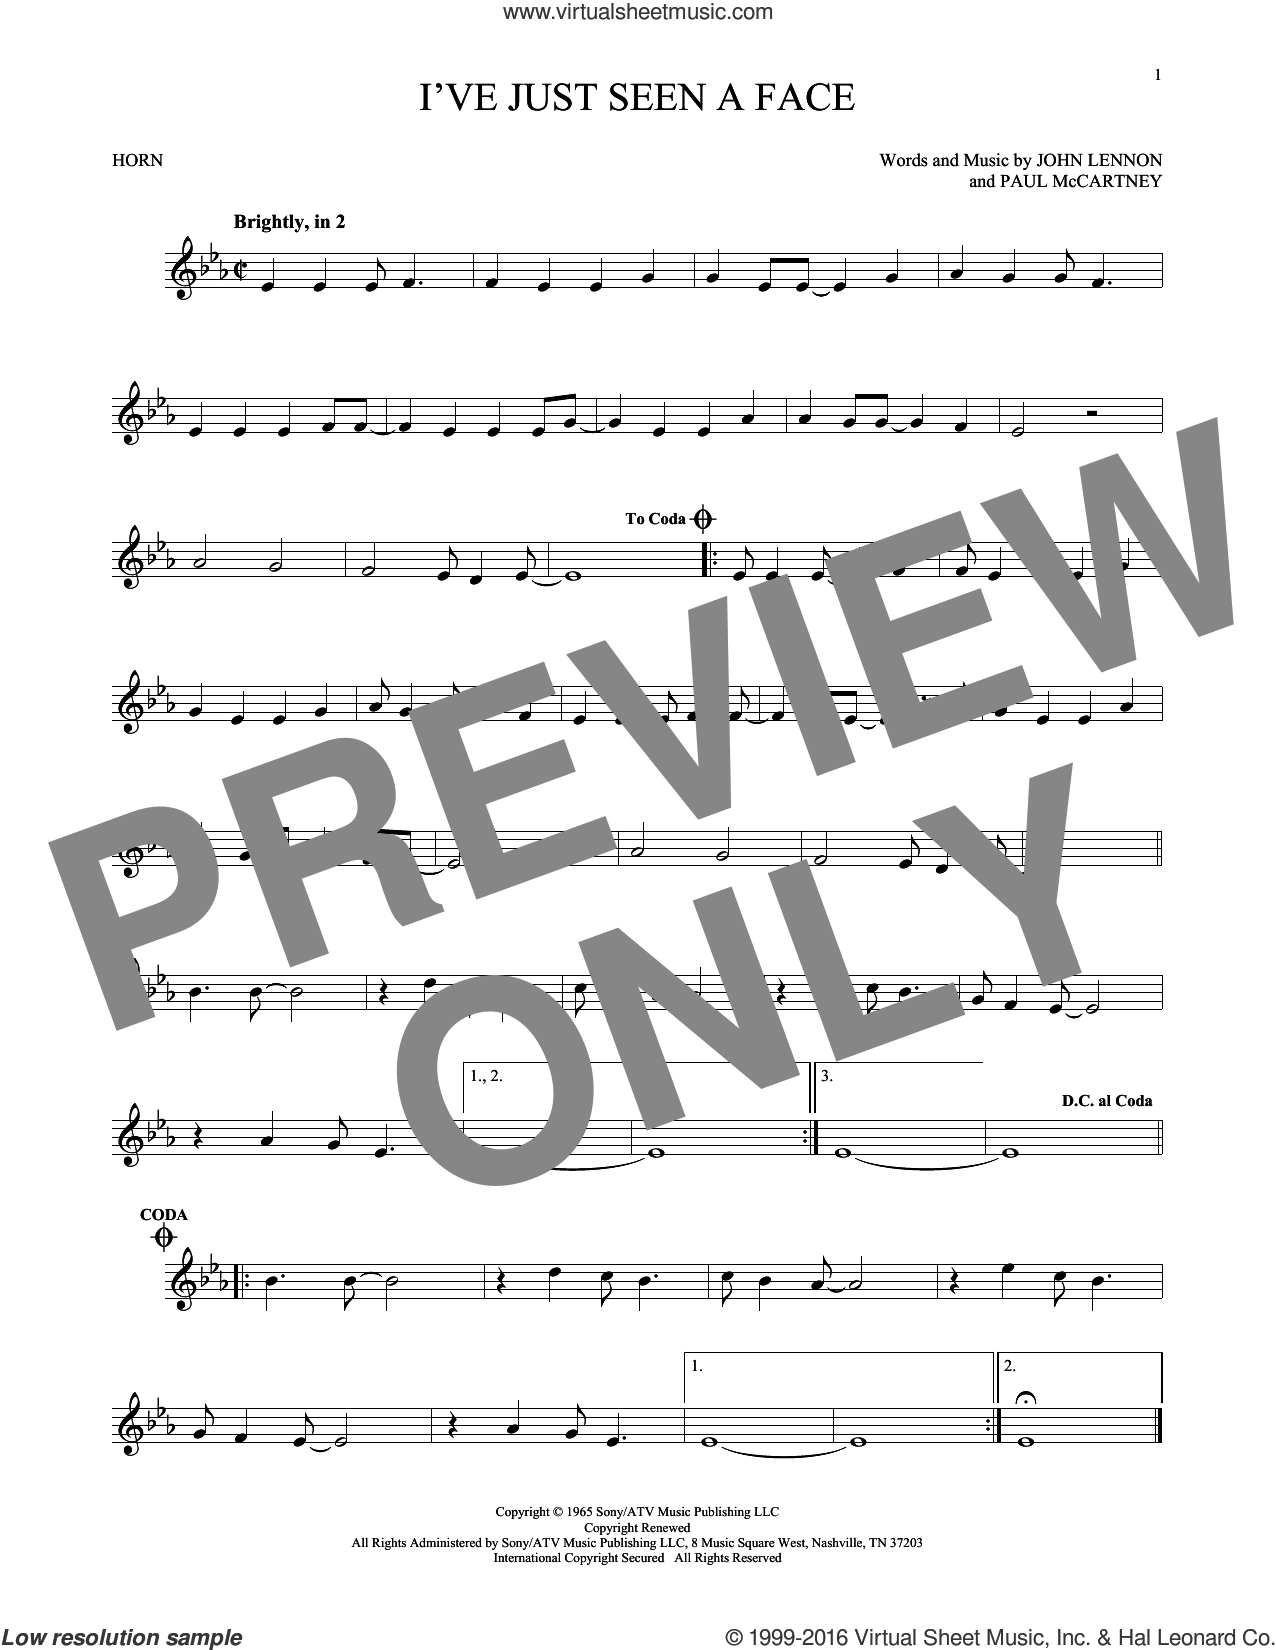 I've Just Seen A Face sheet music for horn solo by The Beatles, John Lennon and Paul McCartney, intermediate skill level